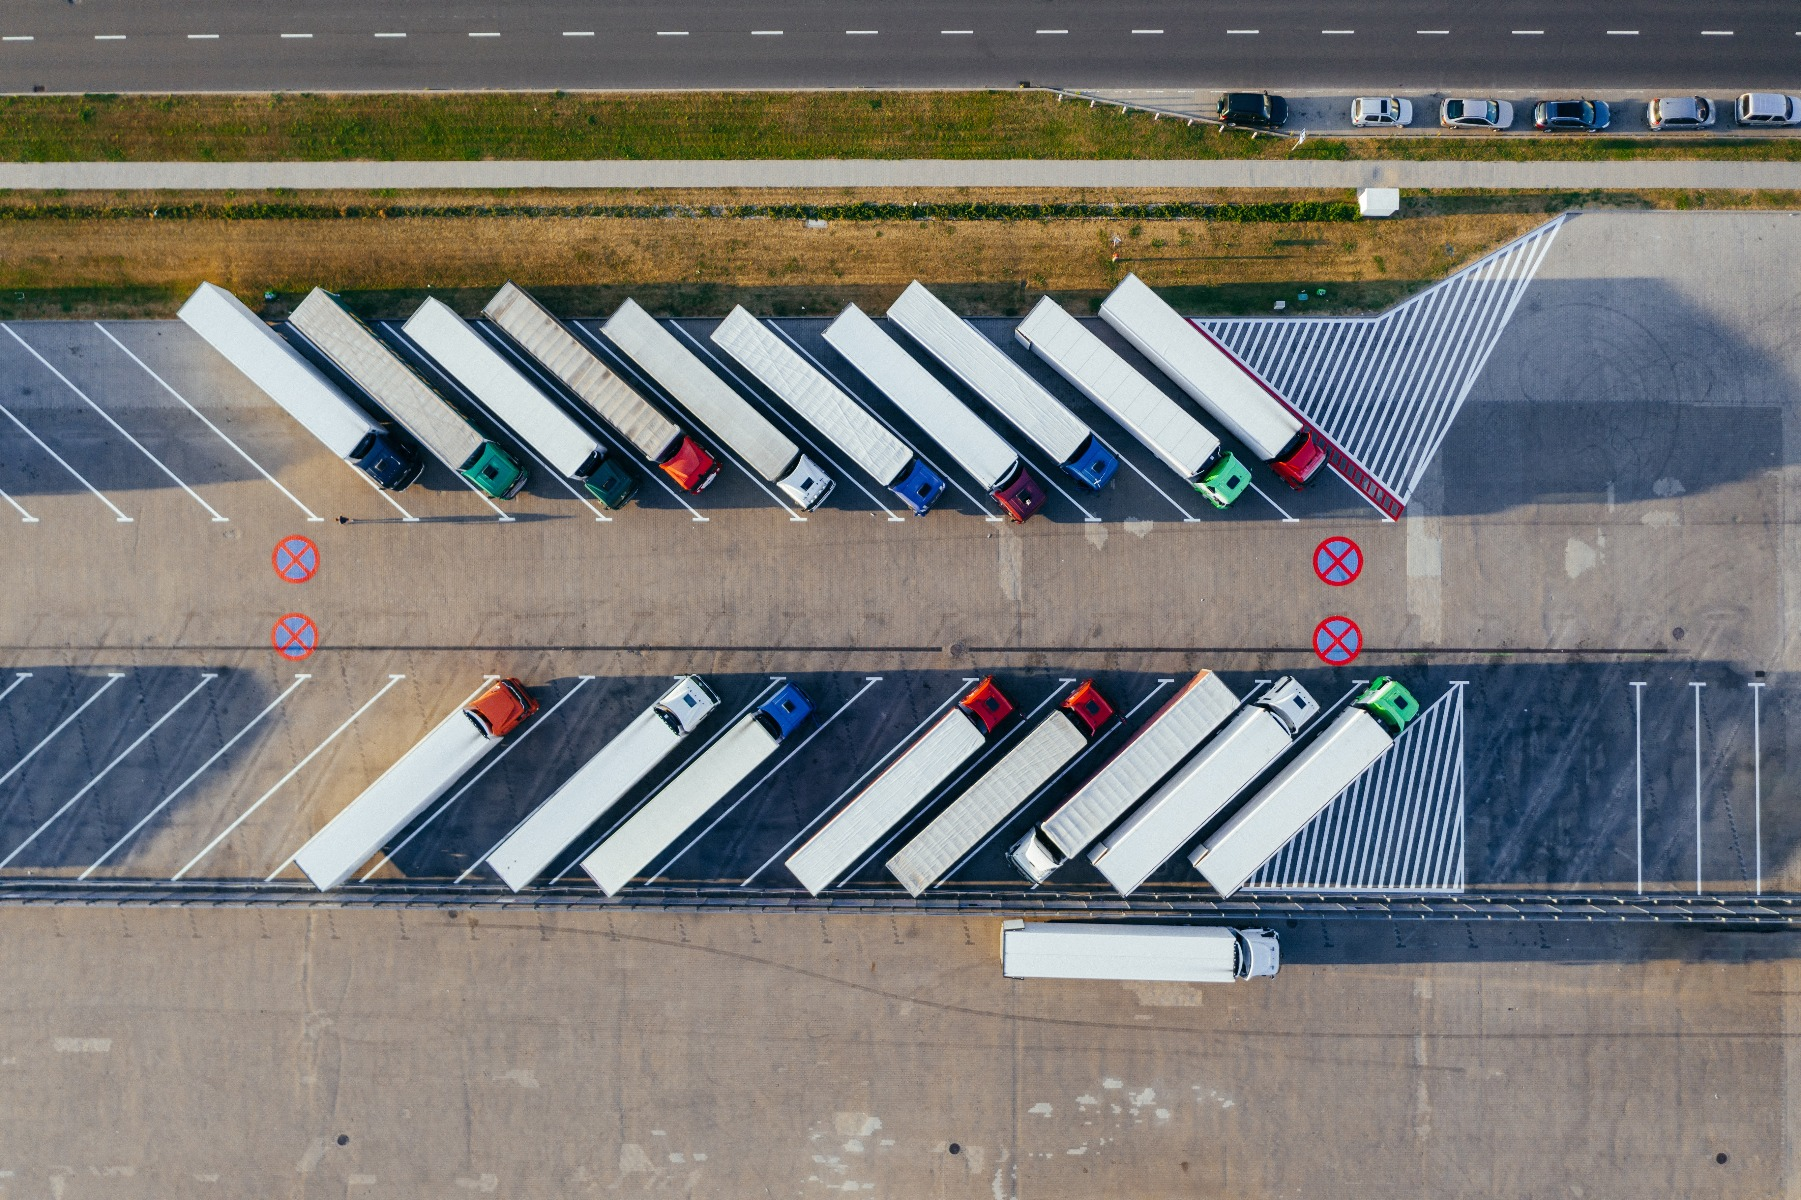 overhead image of semi truck trailers parked at angles back to back in parking lot